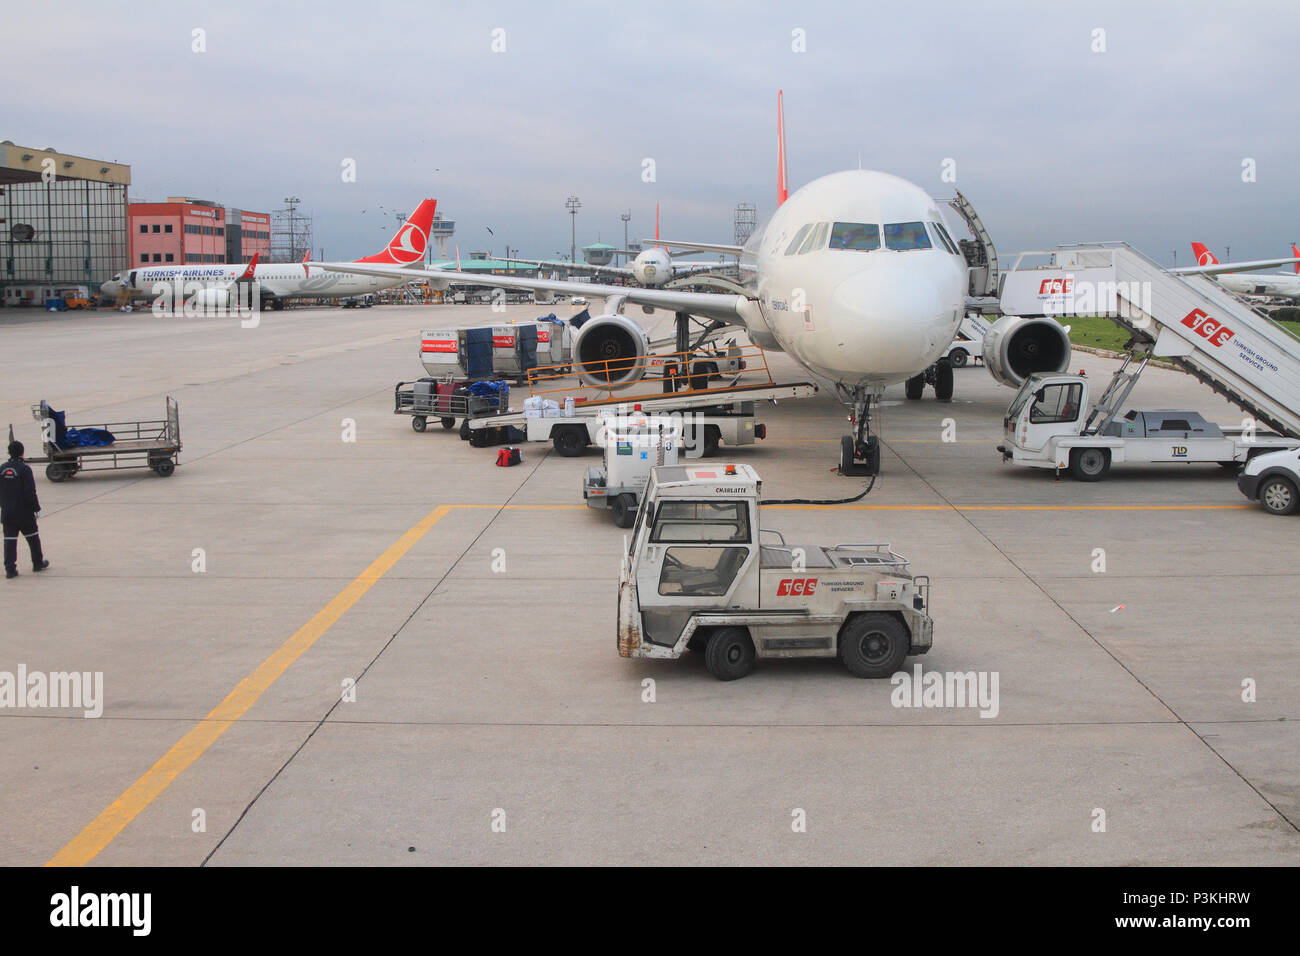 Service of plane at airport. Istanbul, Turkey - Stock Image